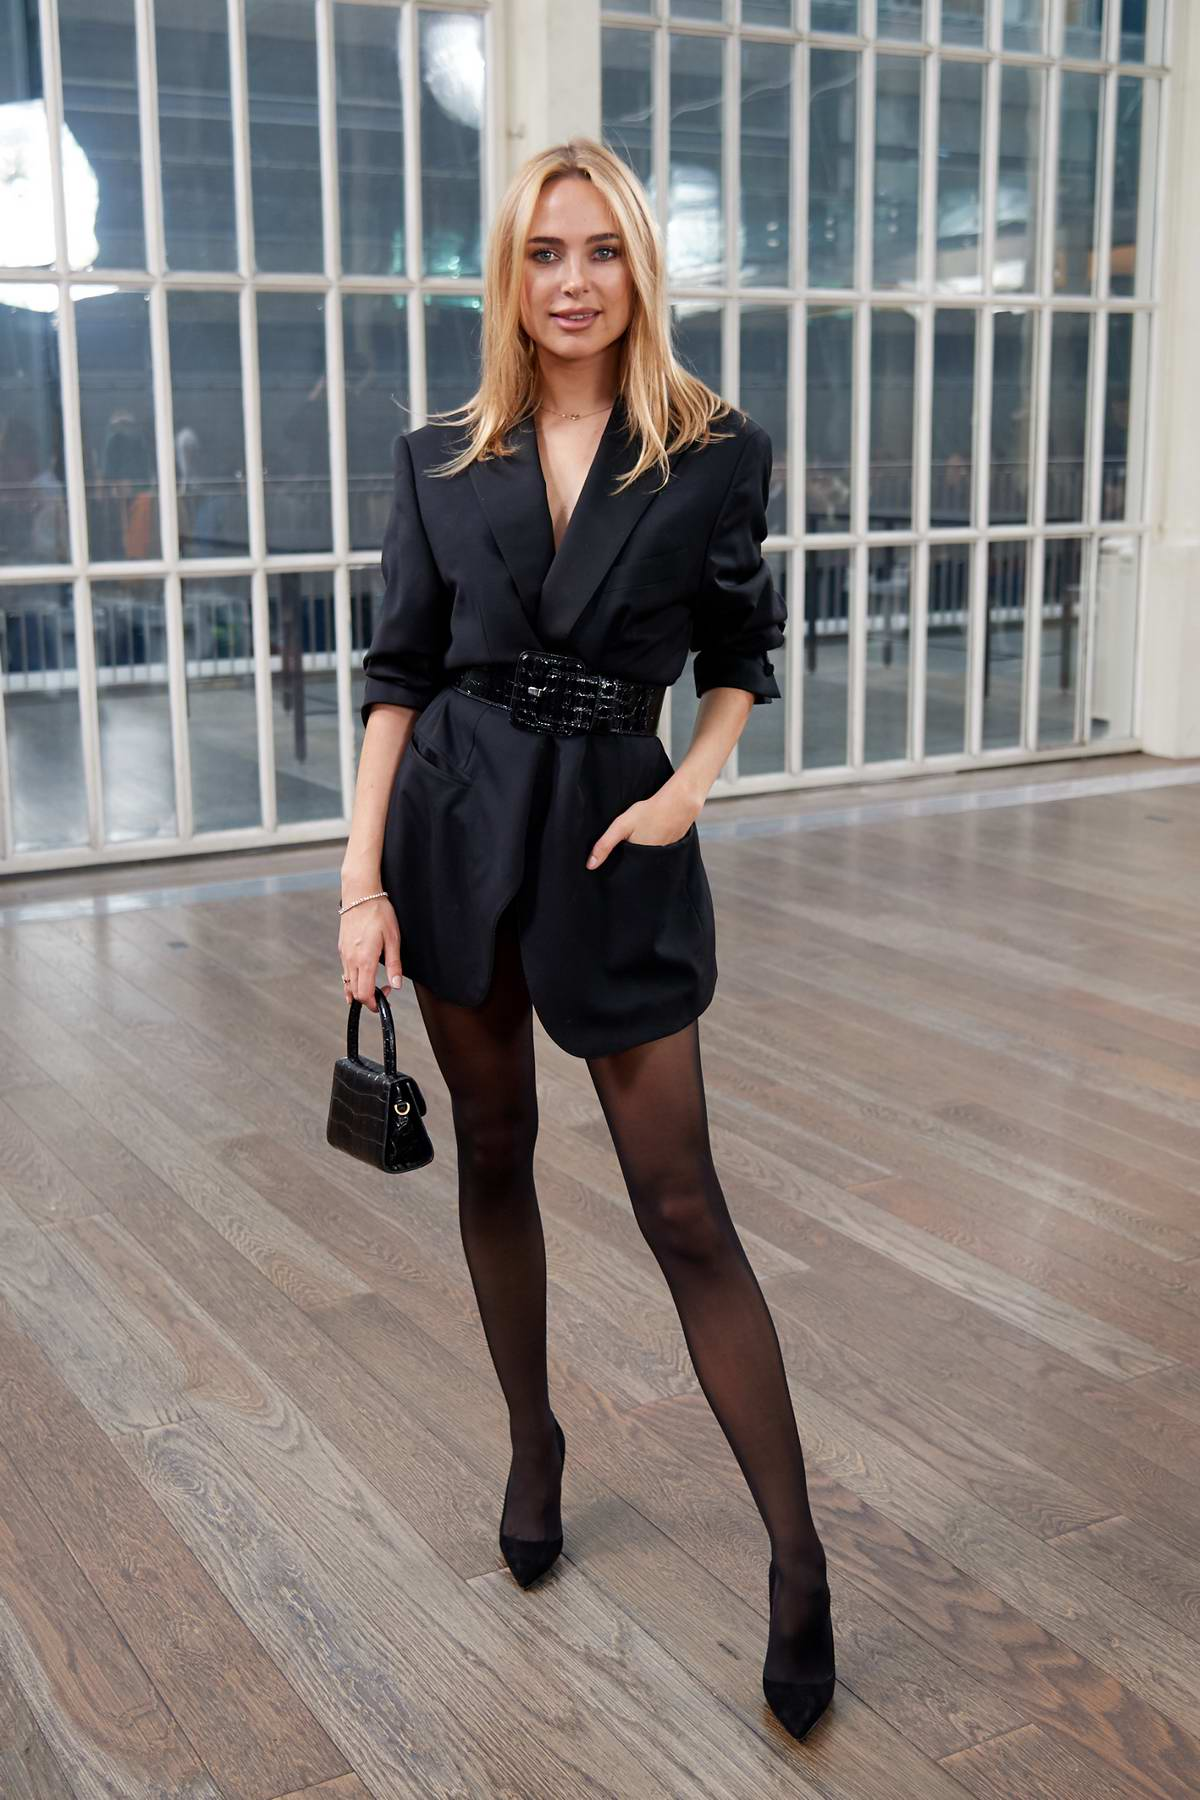 Kimberley Garner attends the Atelier Zuhra Fall/Winter 2020 show during London Fashion Week in London, UK